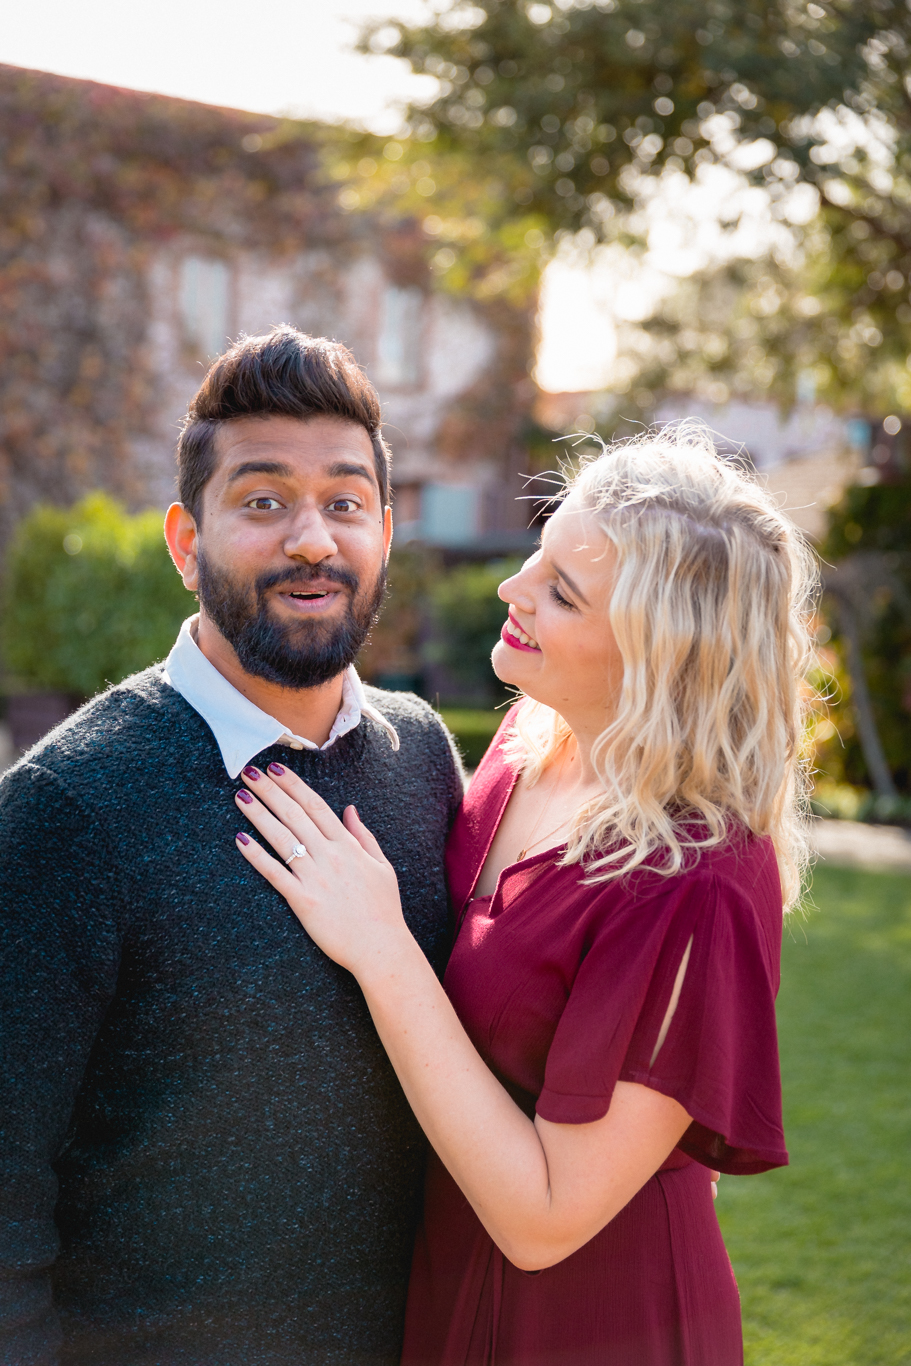 2018.12.03_Ashir-and-Emily-Engagement-Photography-@heymikefrancis-napa-valley-wedding-sacremento-california-heyfrancis-mikefrancis-7580.jpg